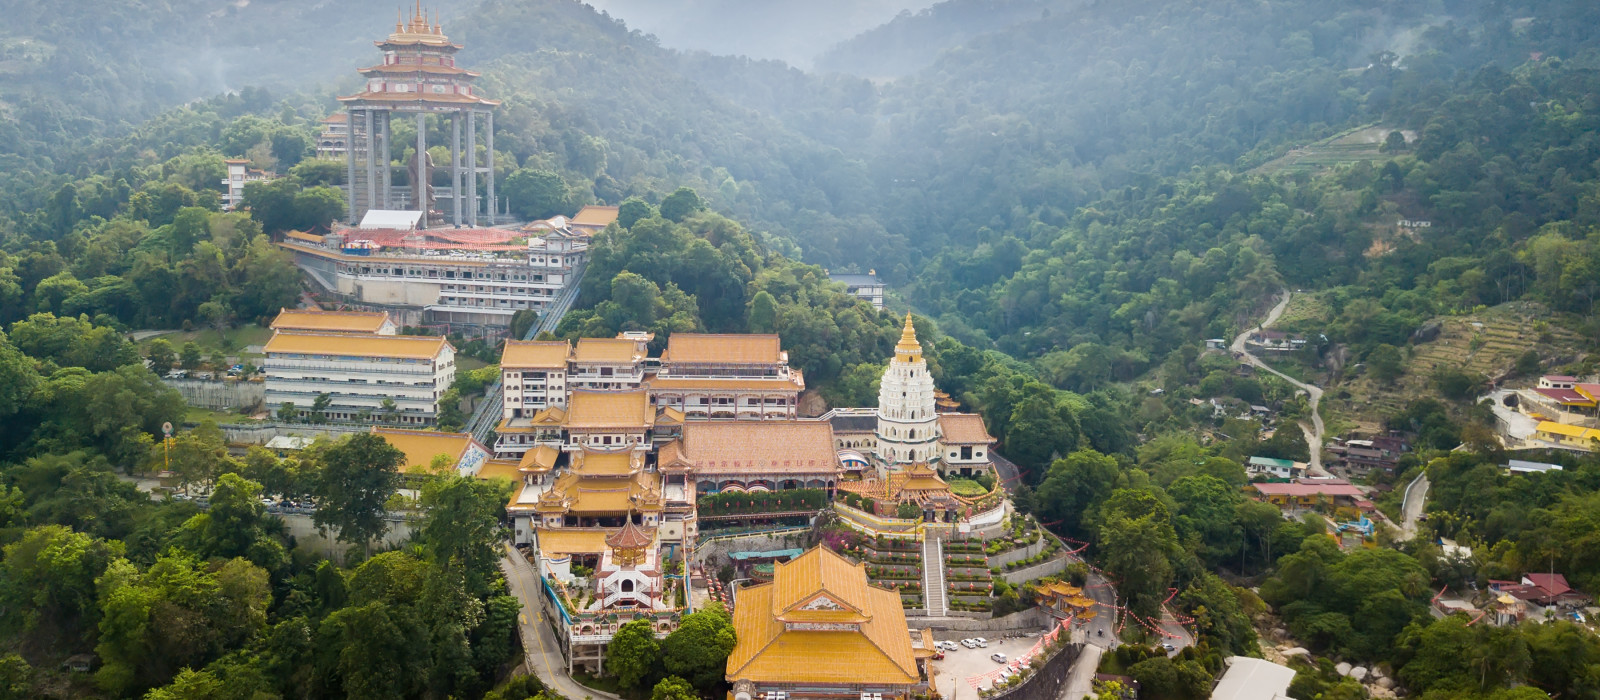 Aerial shot over the Kek Lok Si temple in Penang island, Malaysia, Asia